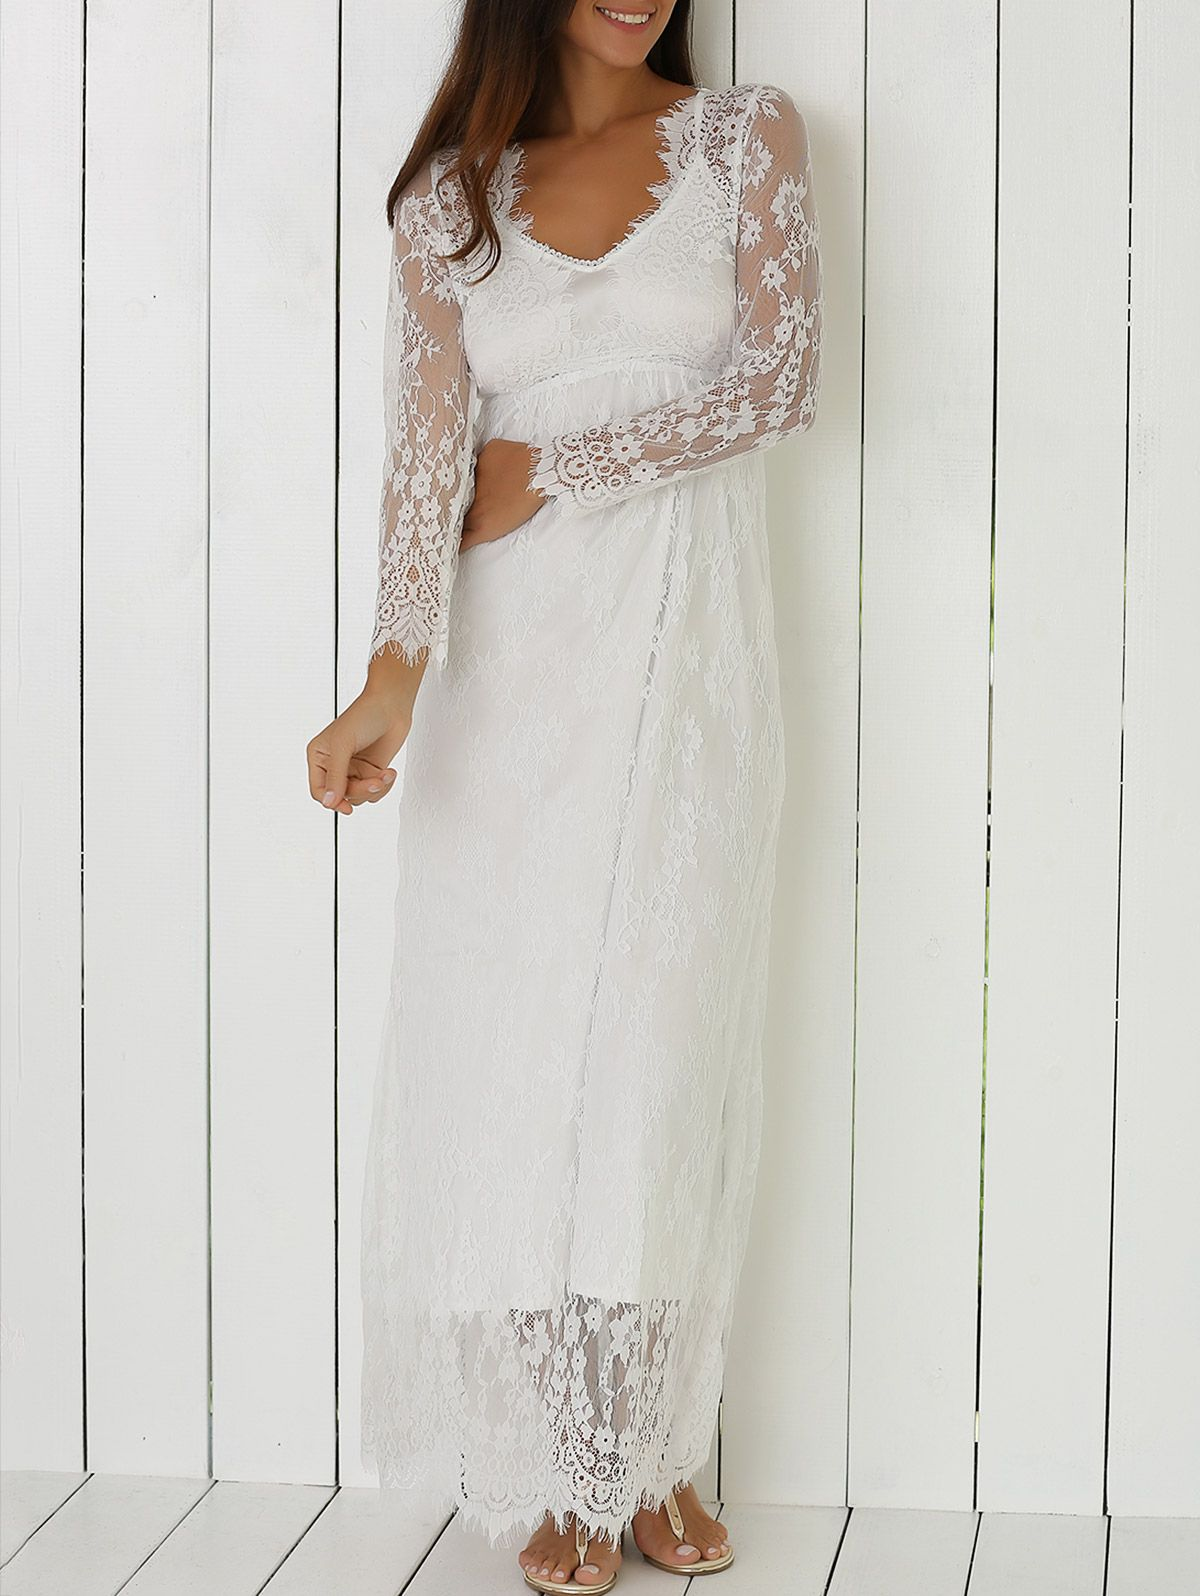 See Through Lace Plunging Neck Dress Cowgirl Dresses Lace Dress Lace Dress With Sleeves